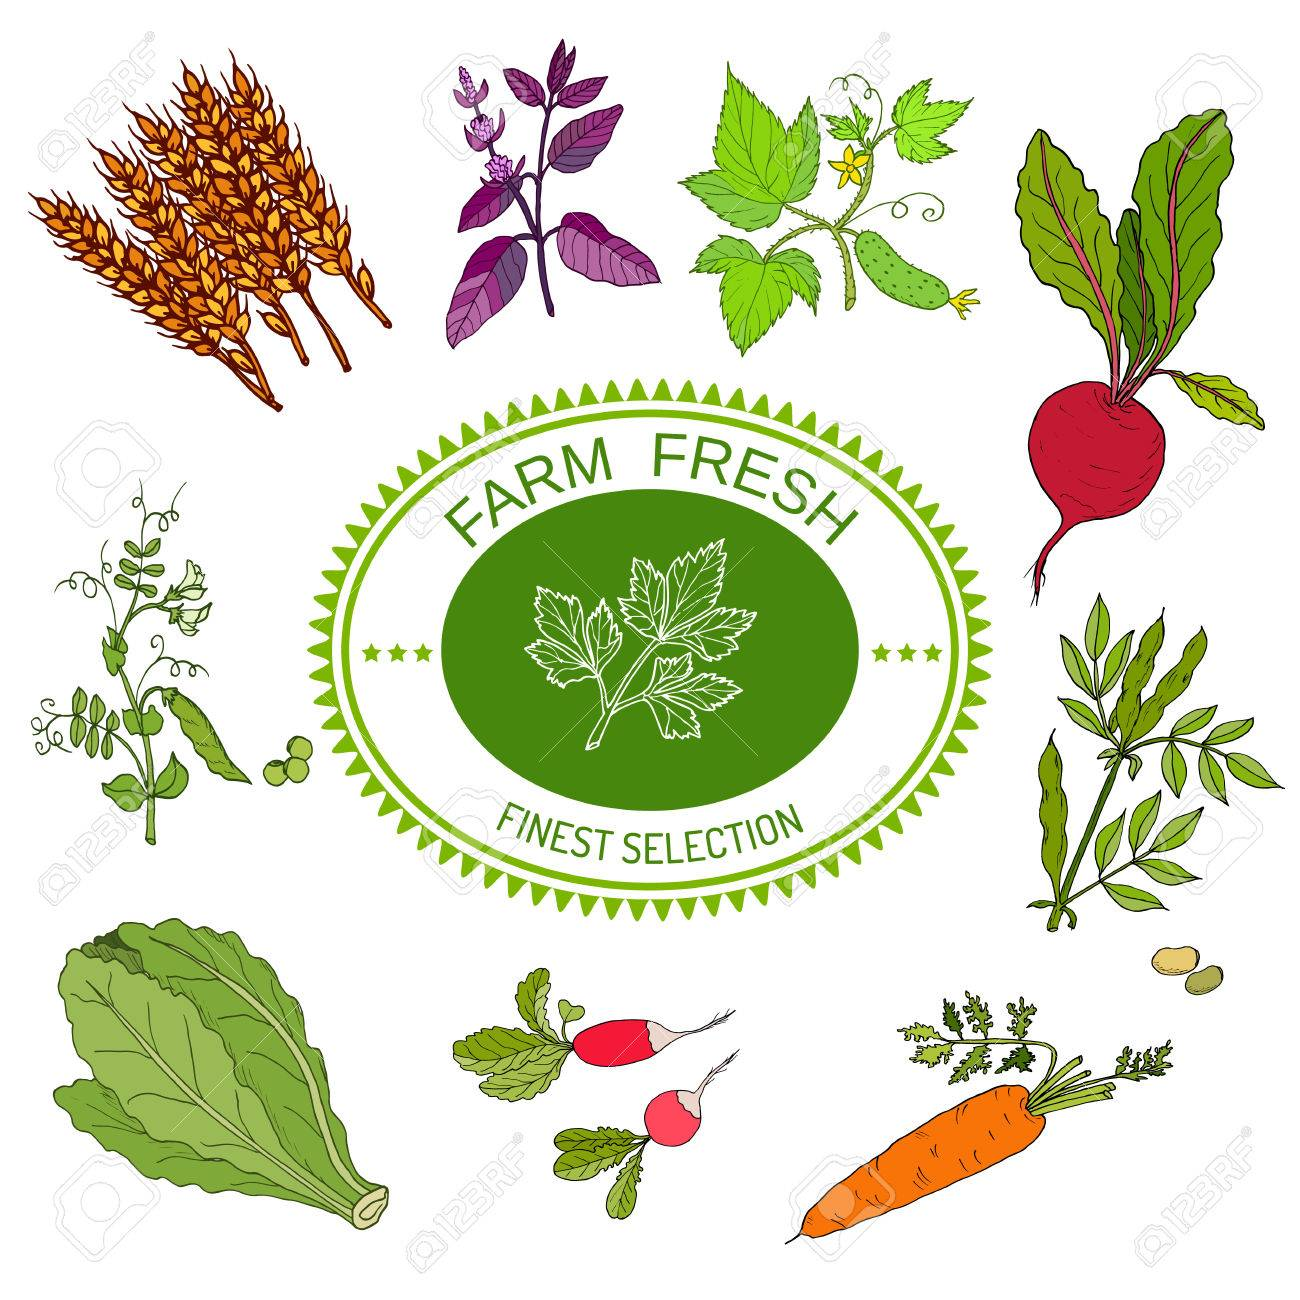 Farmers food market design, logo and vegetables  Hand drawn illustration